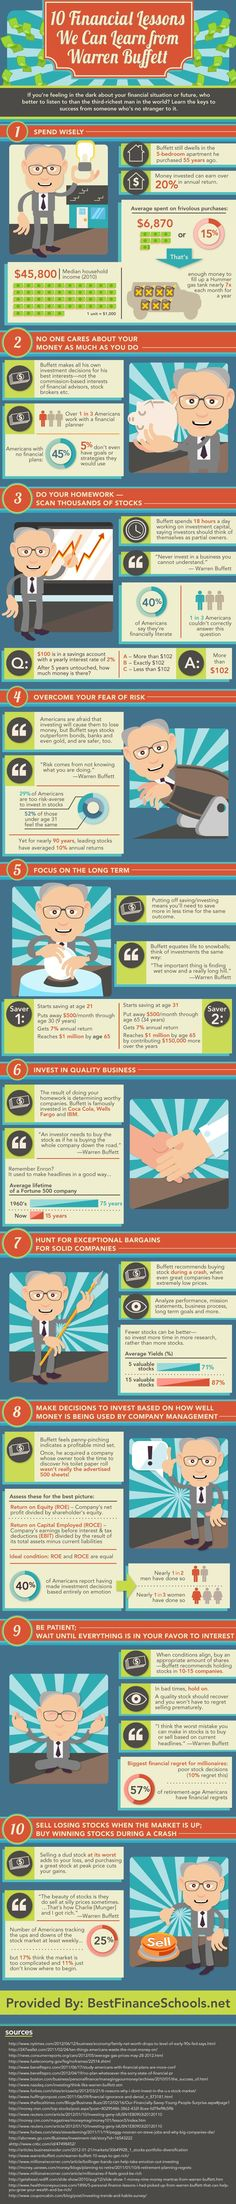 "Infographic - ""10 Financial Lessons We Can Learn from Warren Buffet"" - via Business Insider"